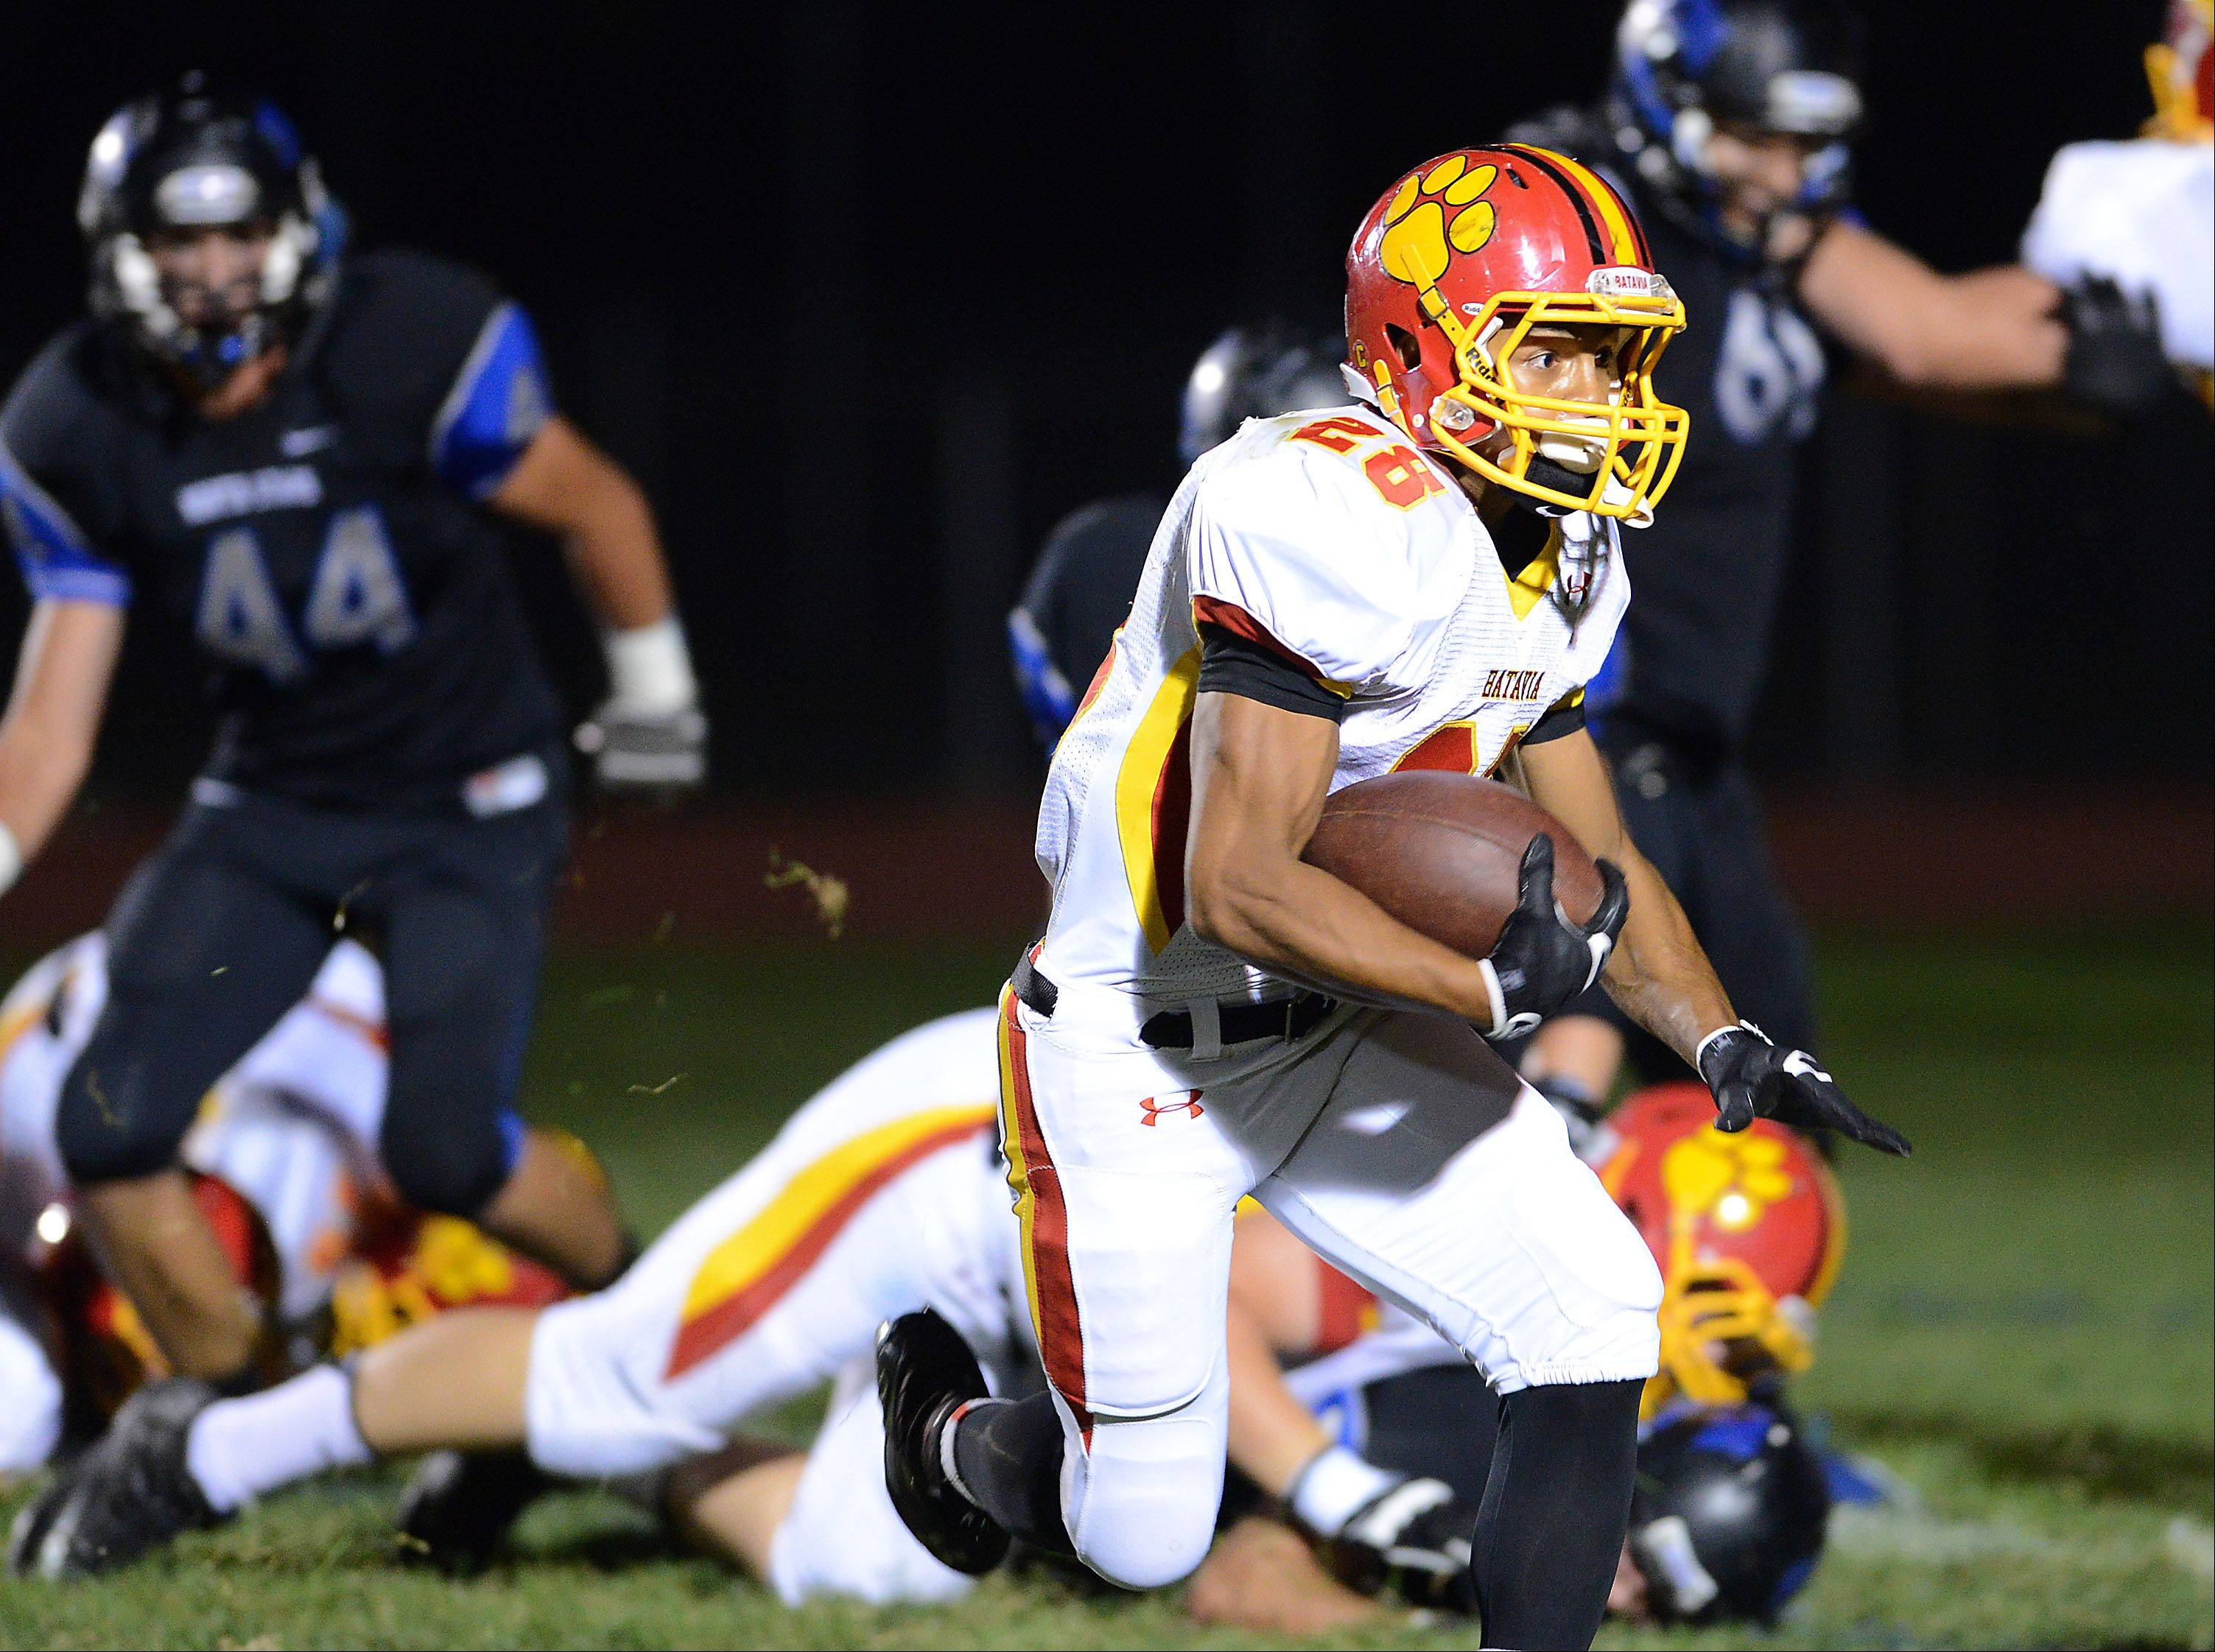 Batavia's Anthony Scaccia takes the ball outside to score on a 4th and 1 against St. Charles North.